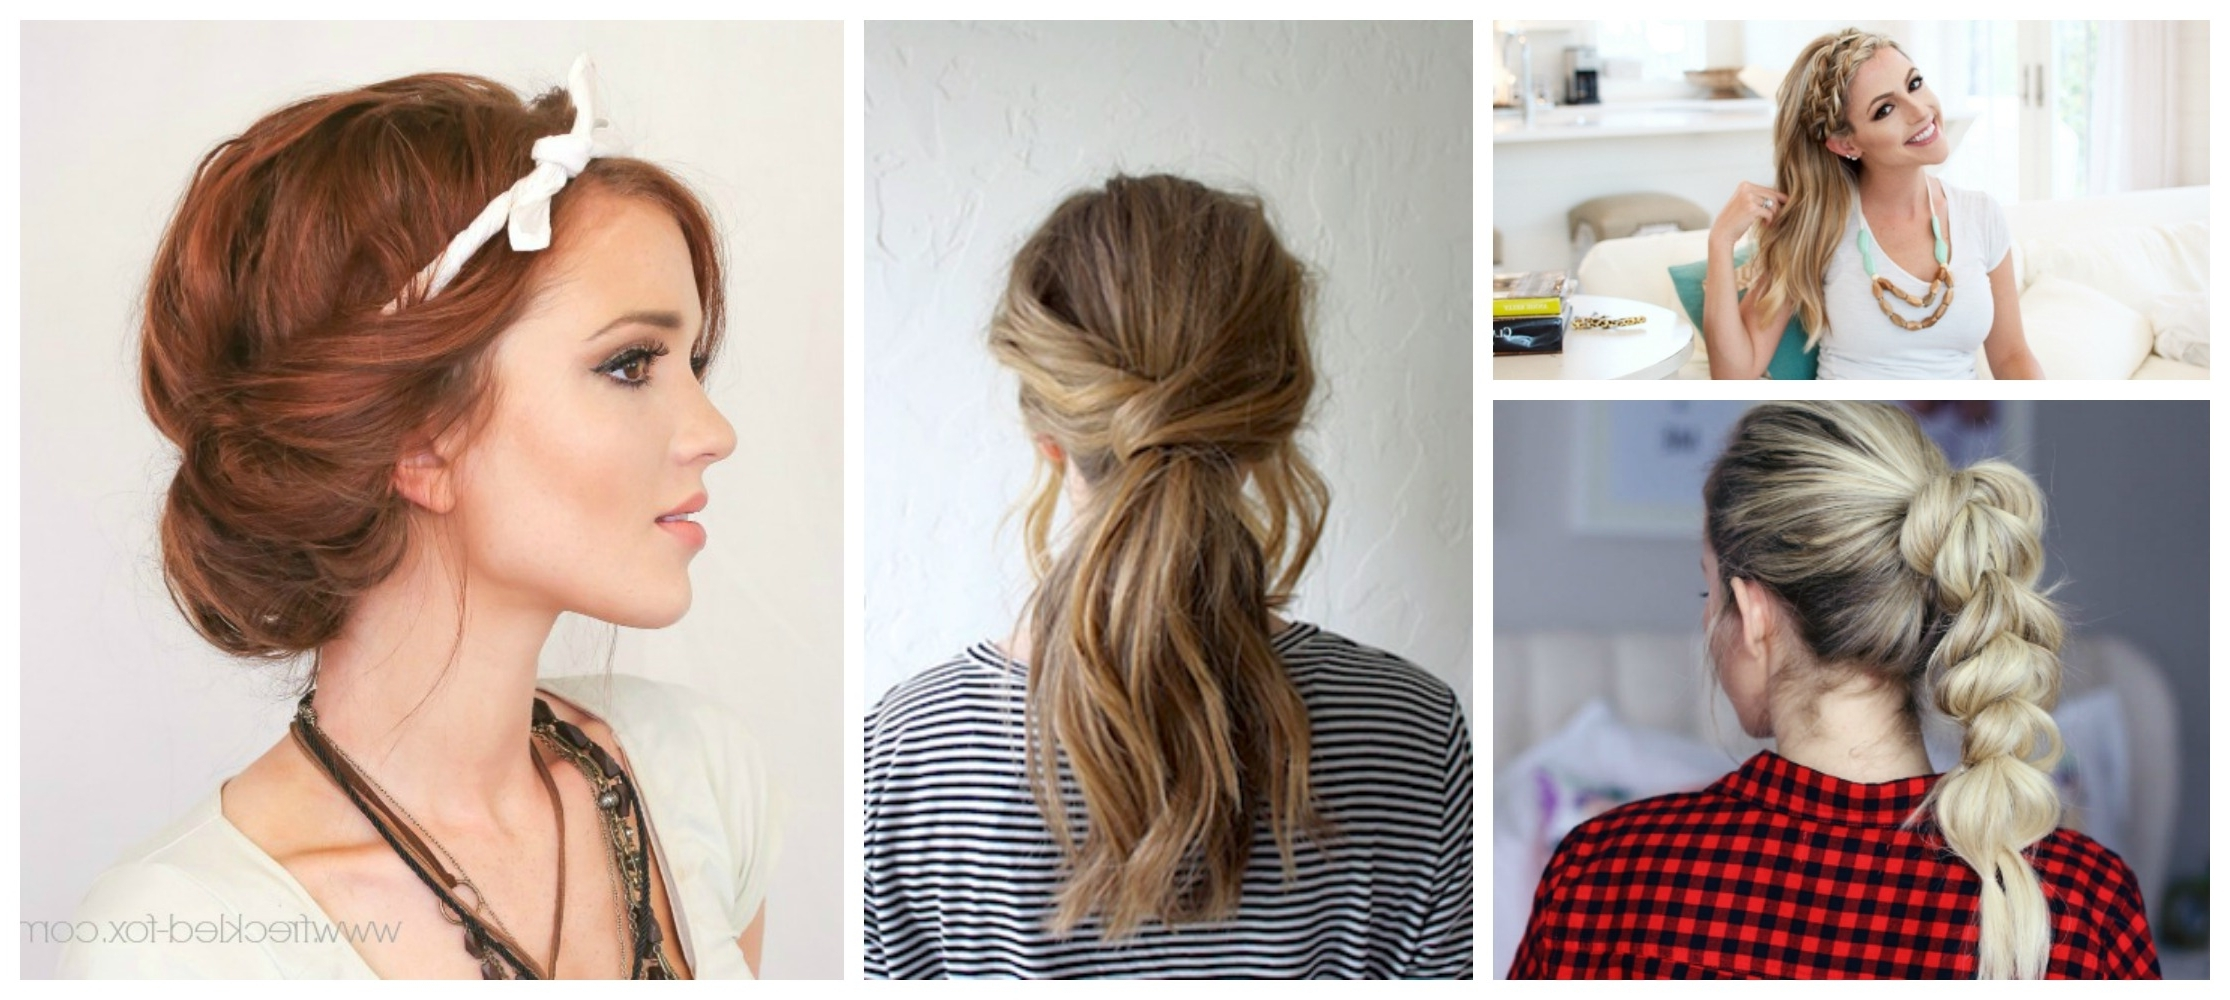 Well Liked Polished Upbraid Hairstyles Regarding 8 Quick & Easy Hairstyles That Make Dirty Hair Look Fab! – Diy Thought (View 20 of 20)